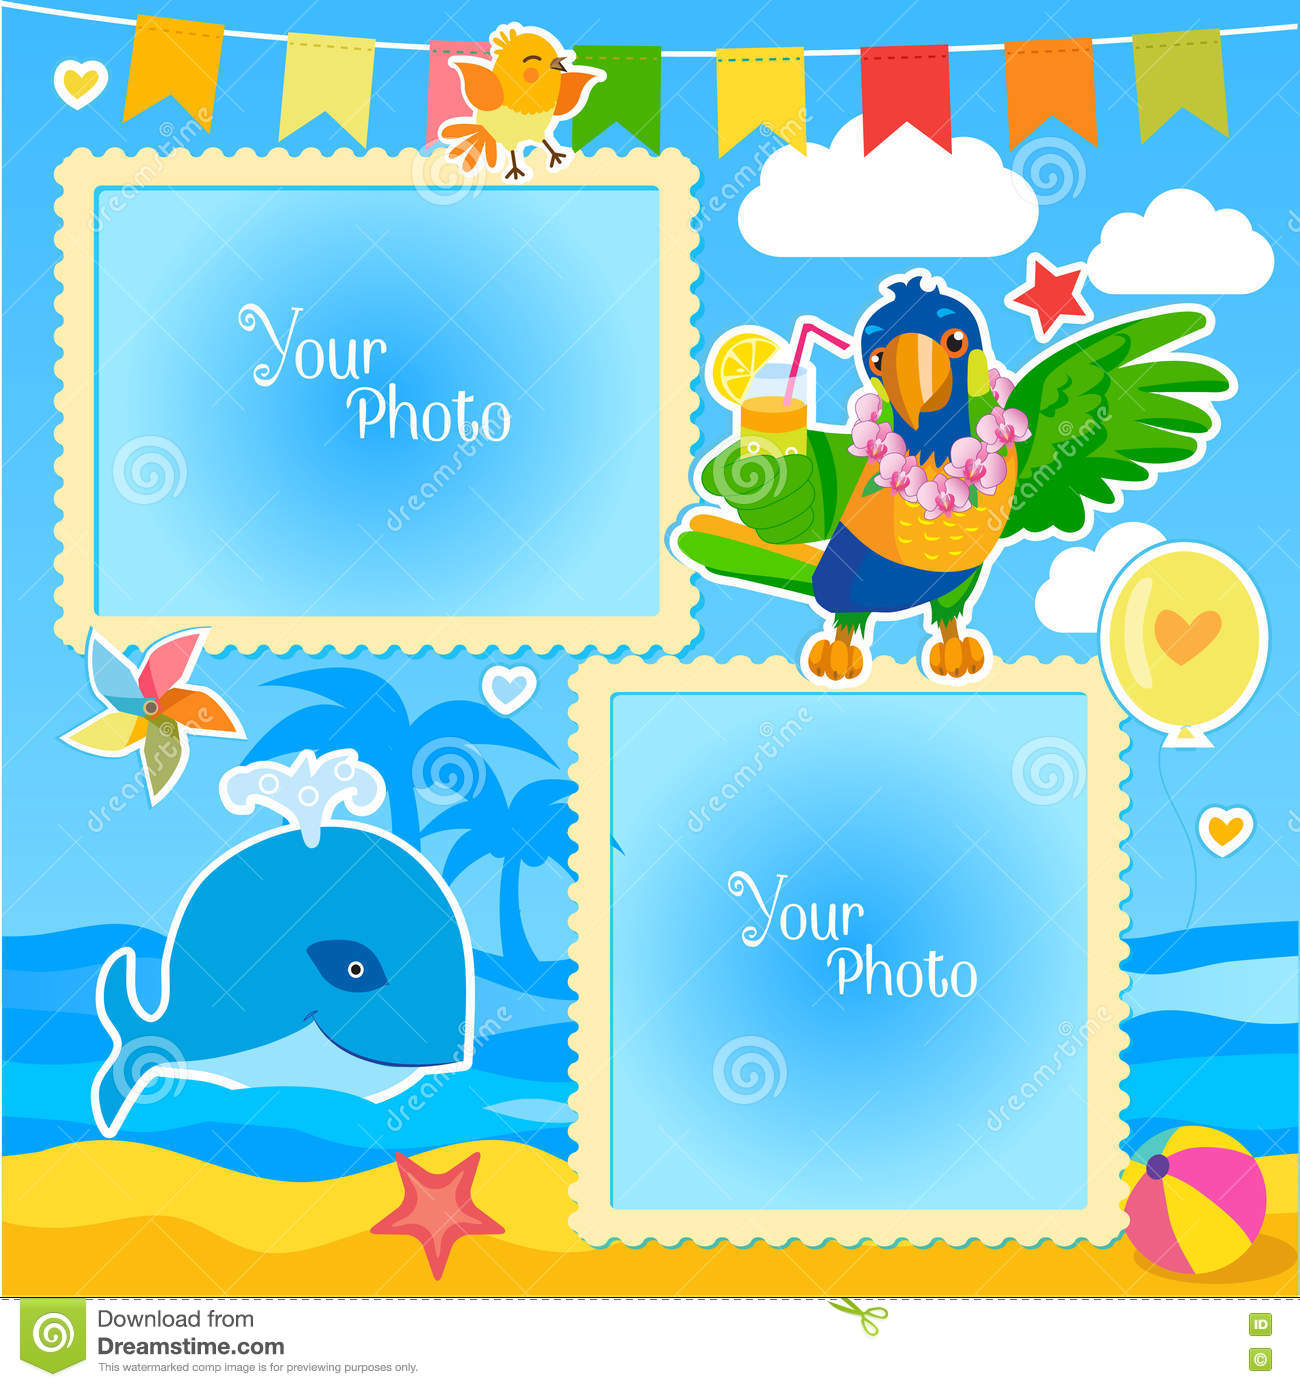 Royalty-Free Vector. Download Vacation Summer Photo Frames ...